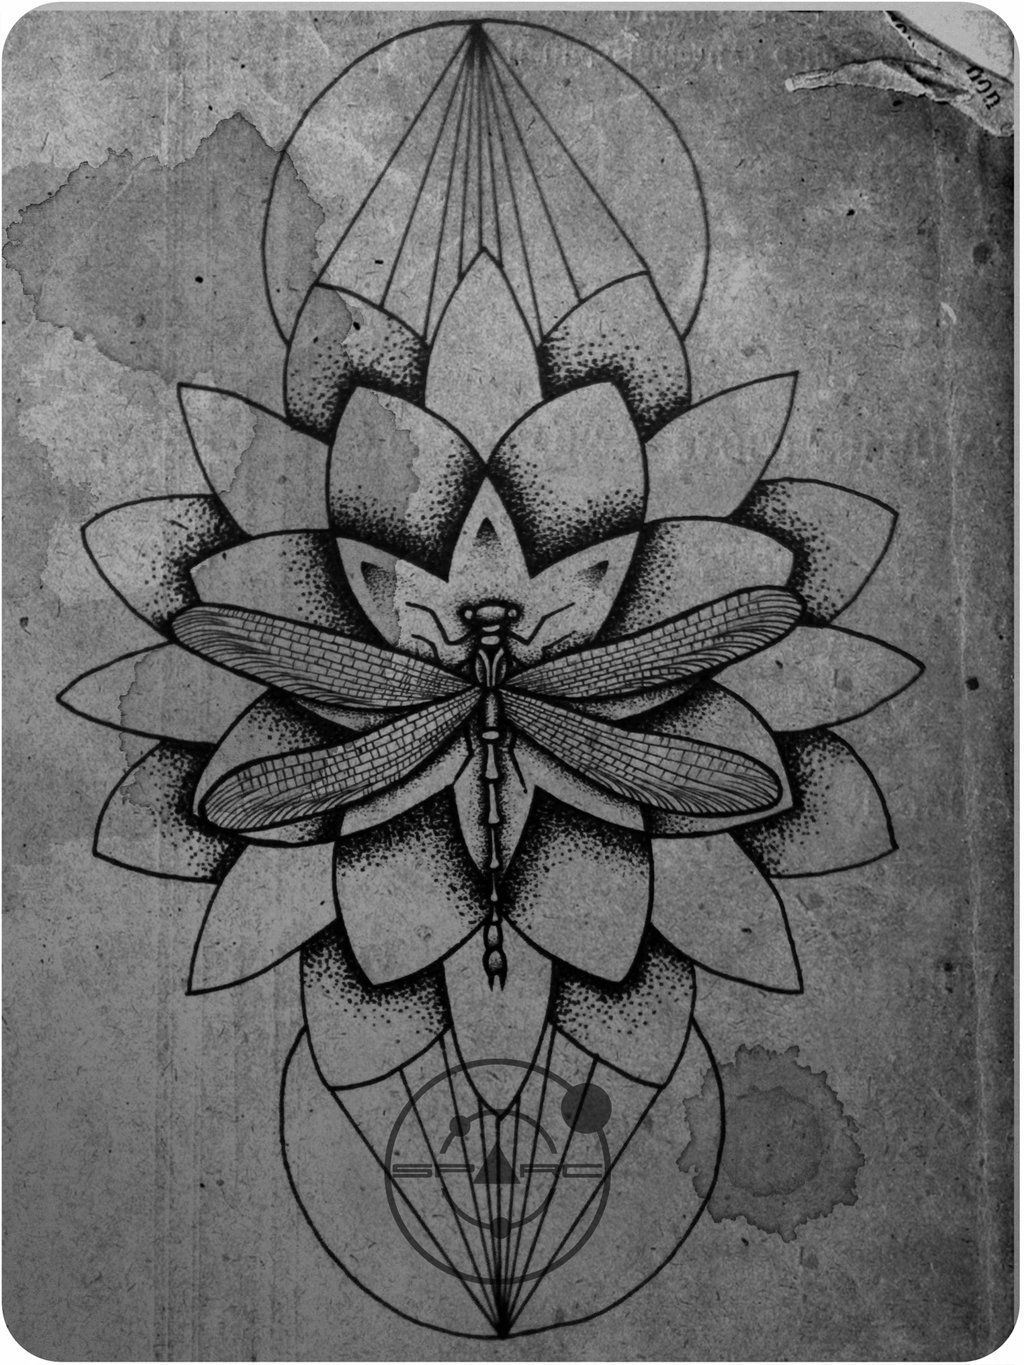 Dragonfly Tattoo Sketch - Love